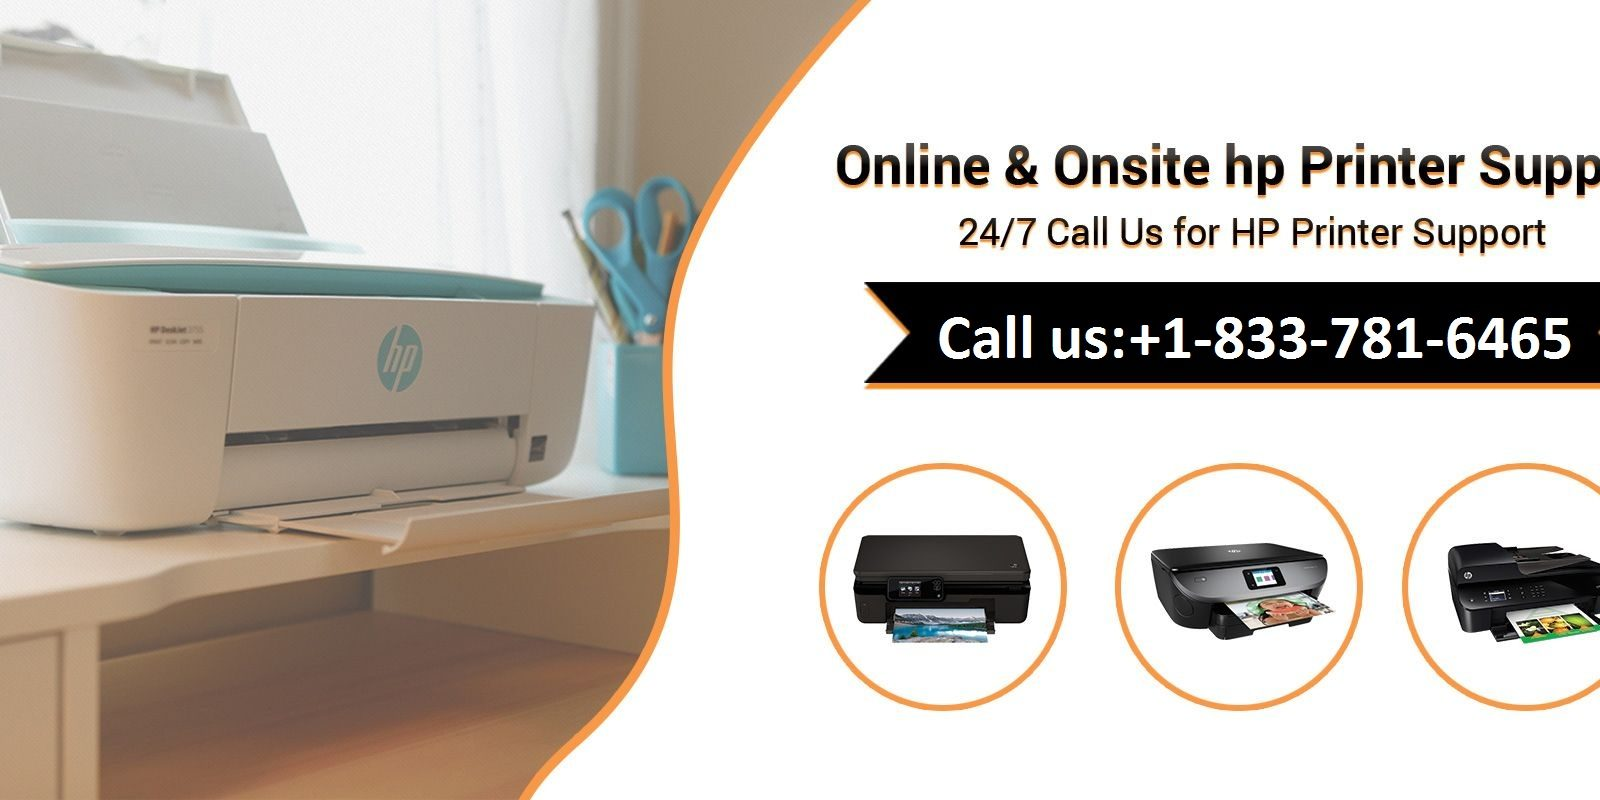 HP Printer Technical Support, HP Printer Support Number, Unsupported HP Printer to Work On Mac OS